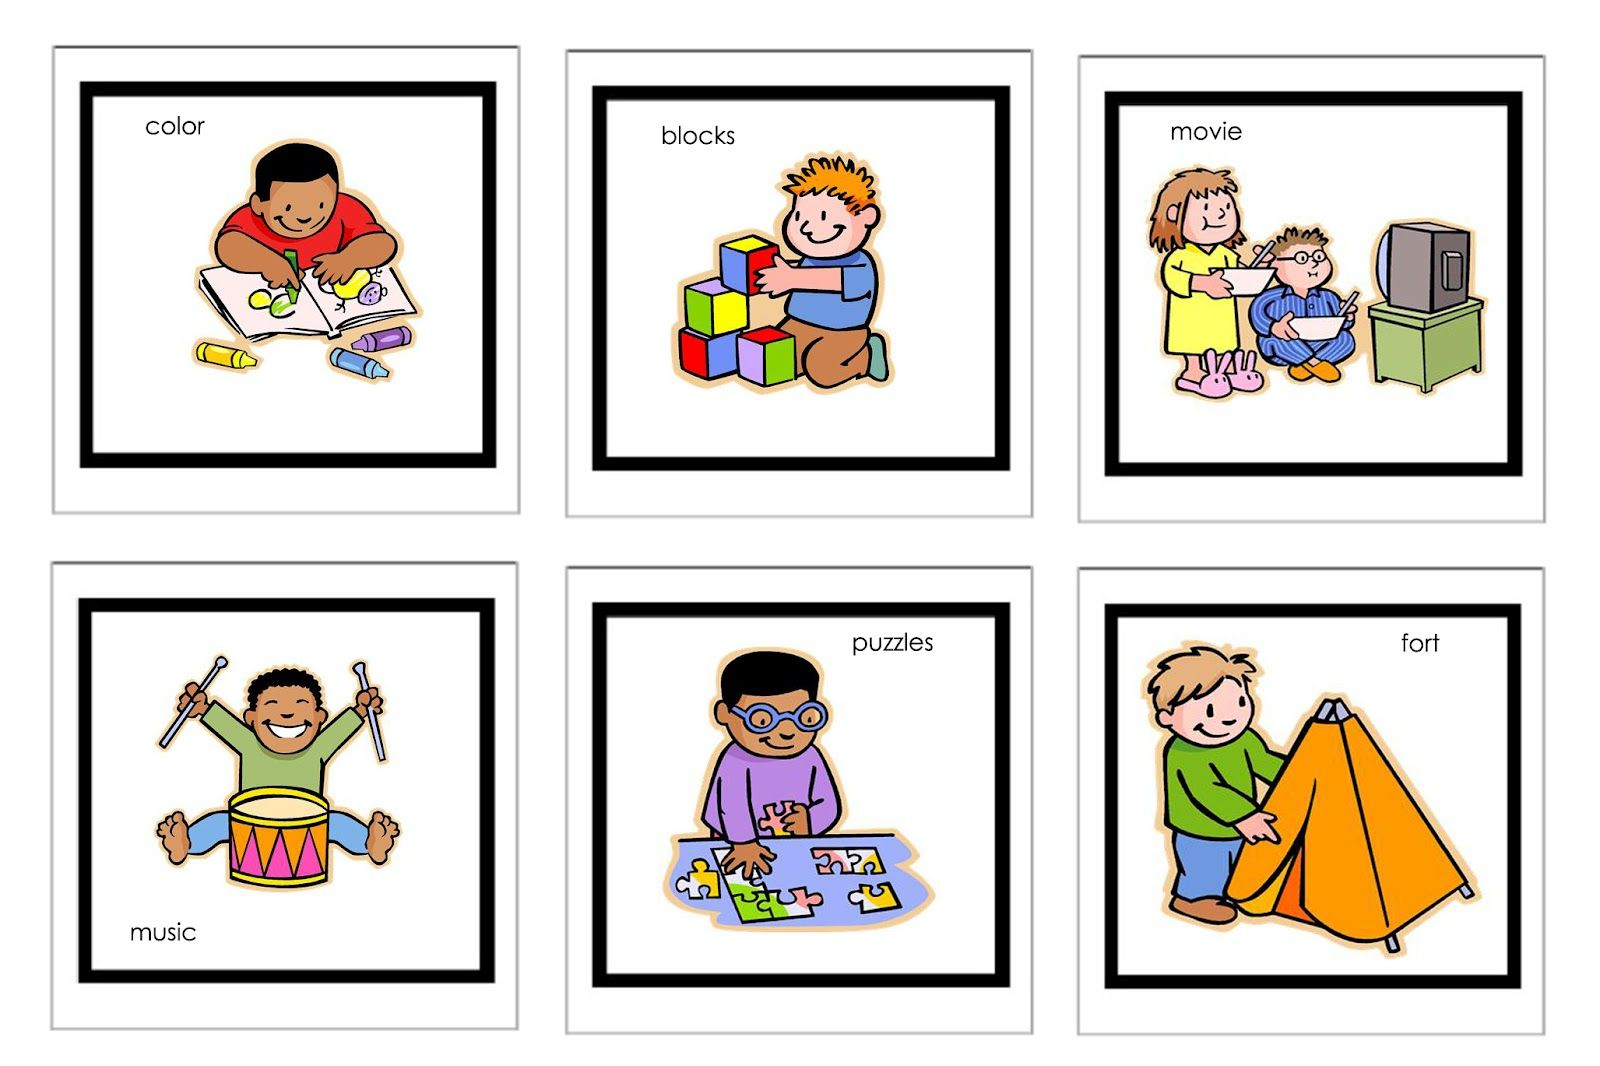 Picture Cards For Nonverbal Children | Free Printable Visual - Free Printable Visual Puzzles